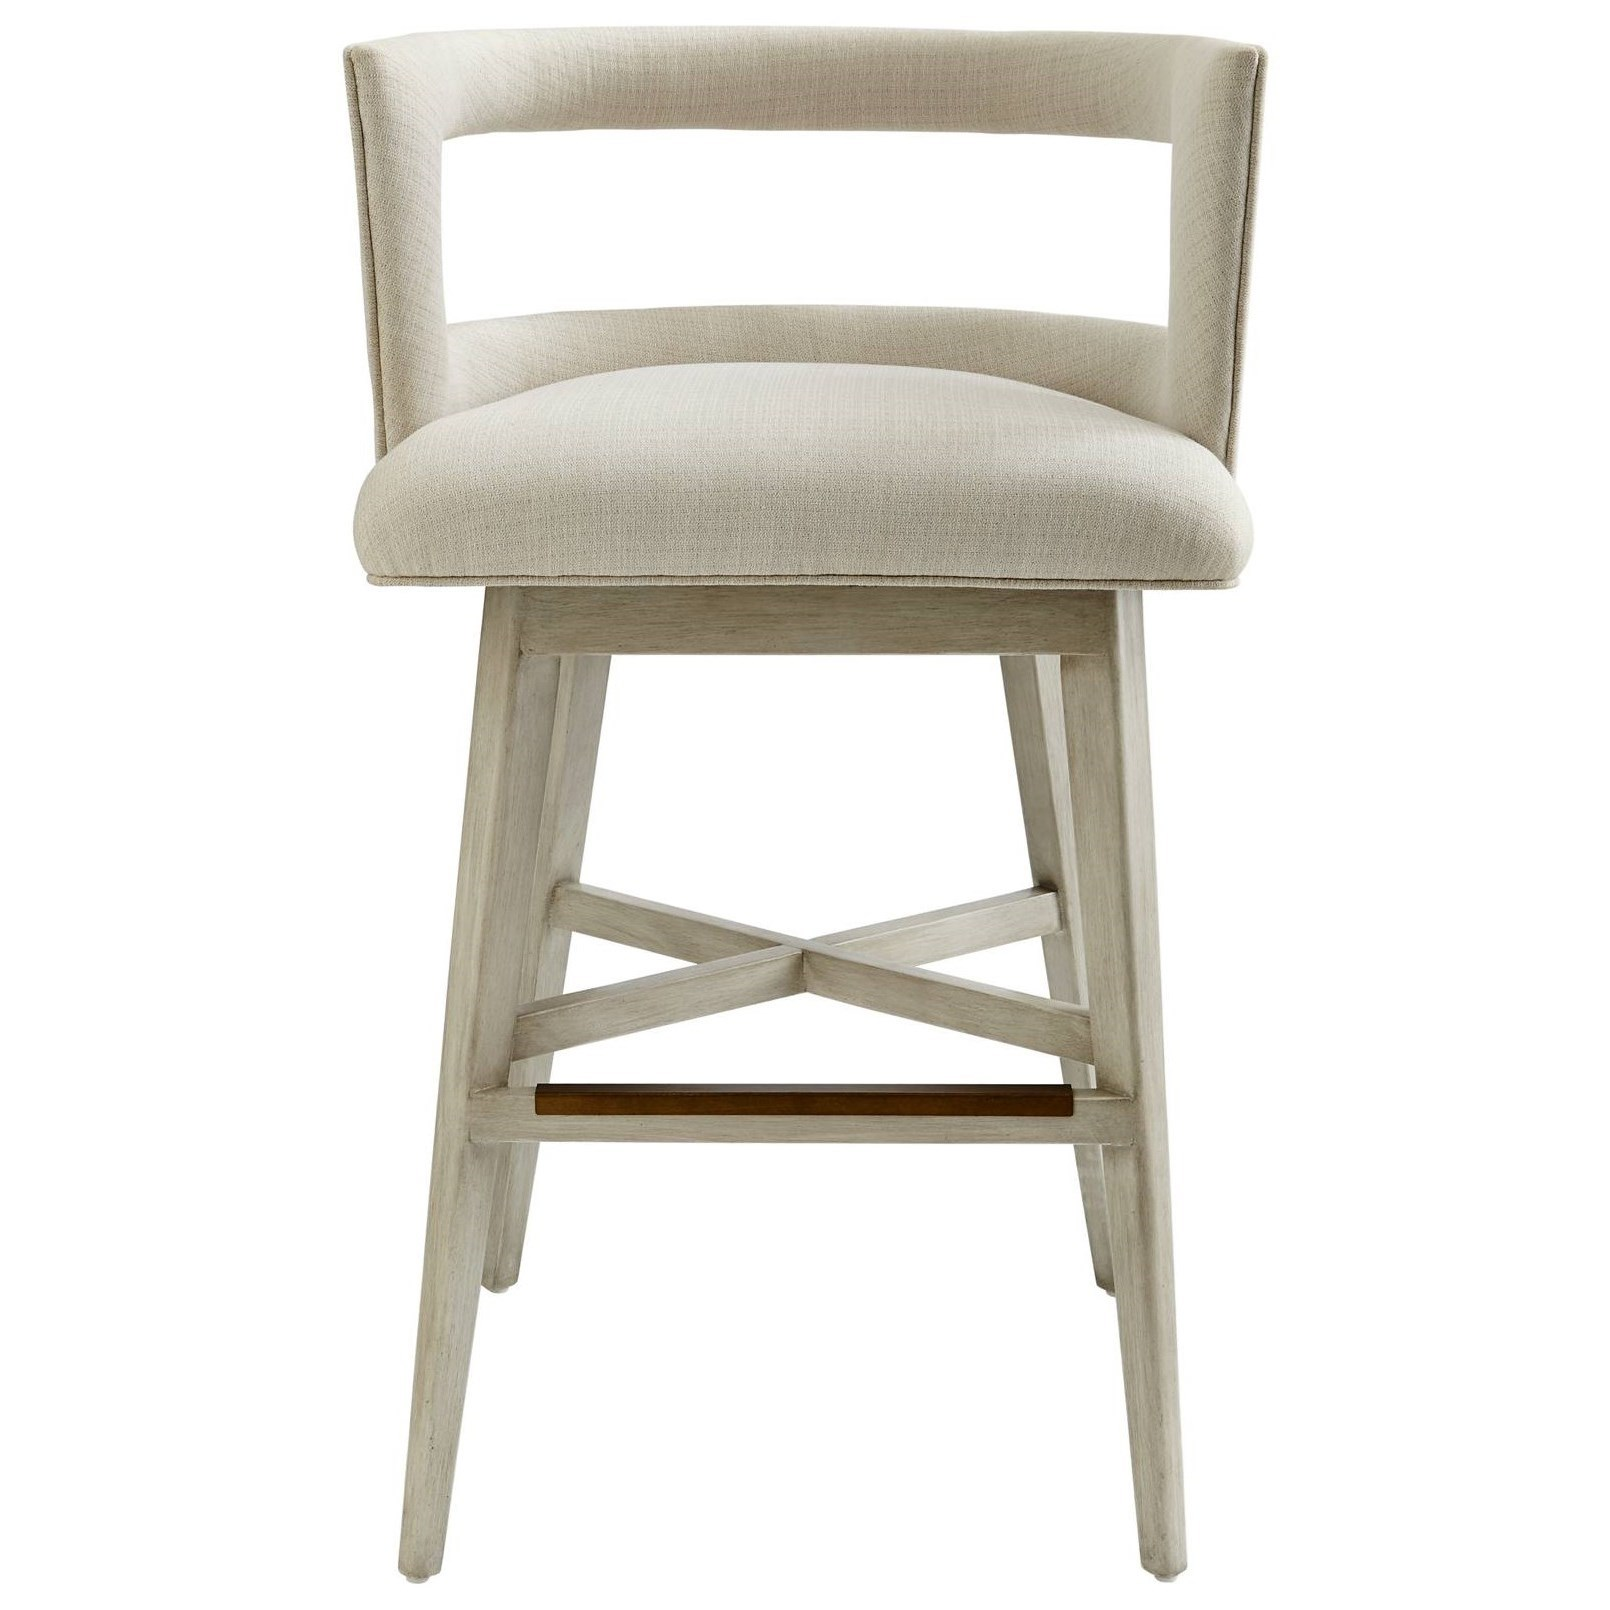 Stanley Furniture Coastal Living Oasis Crestwood Barstool with Swivel Seat Dunk & Bright